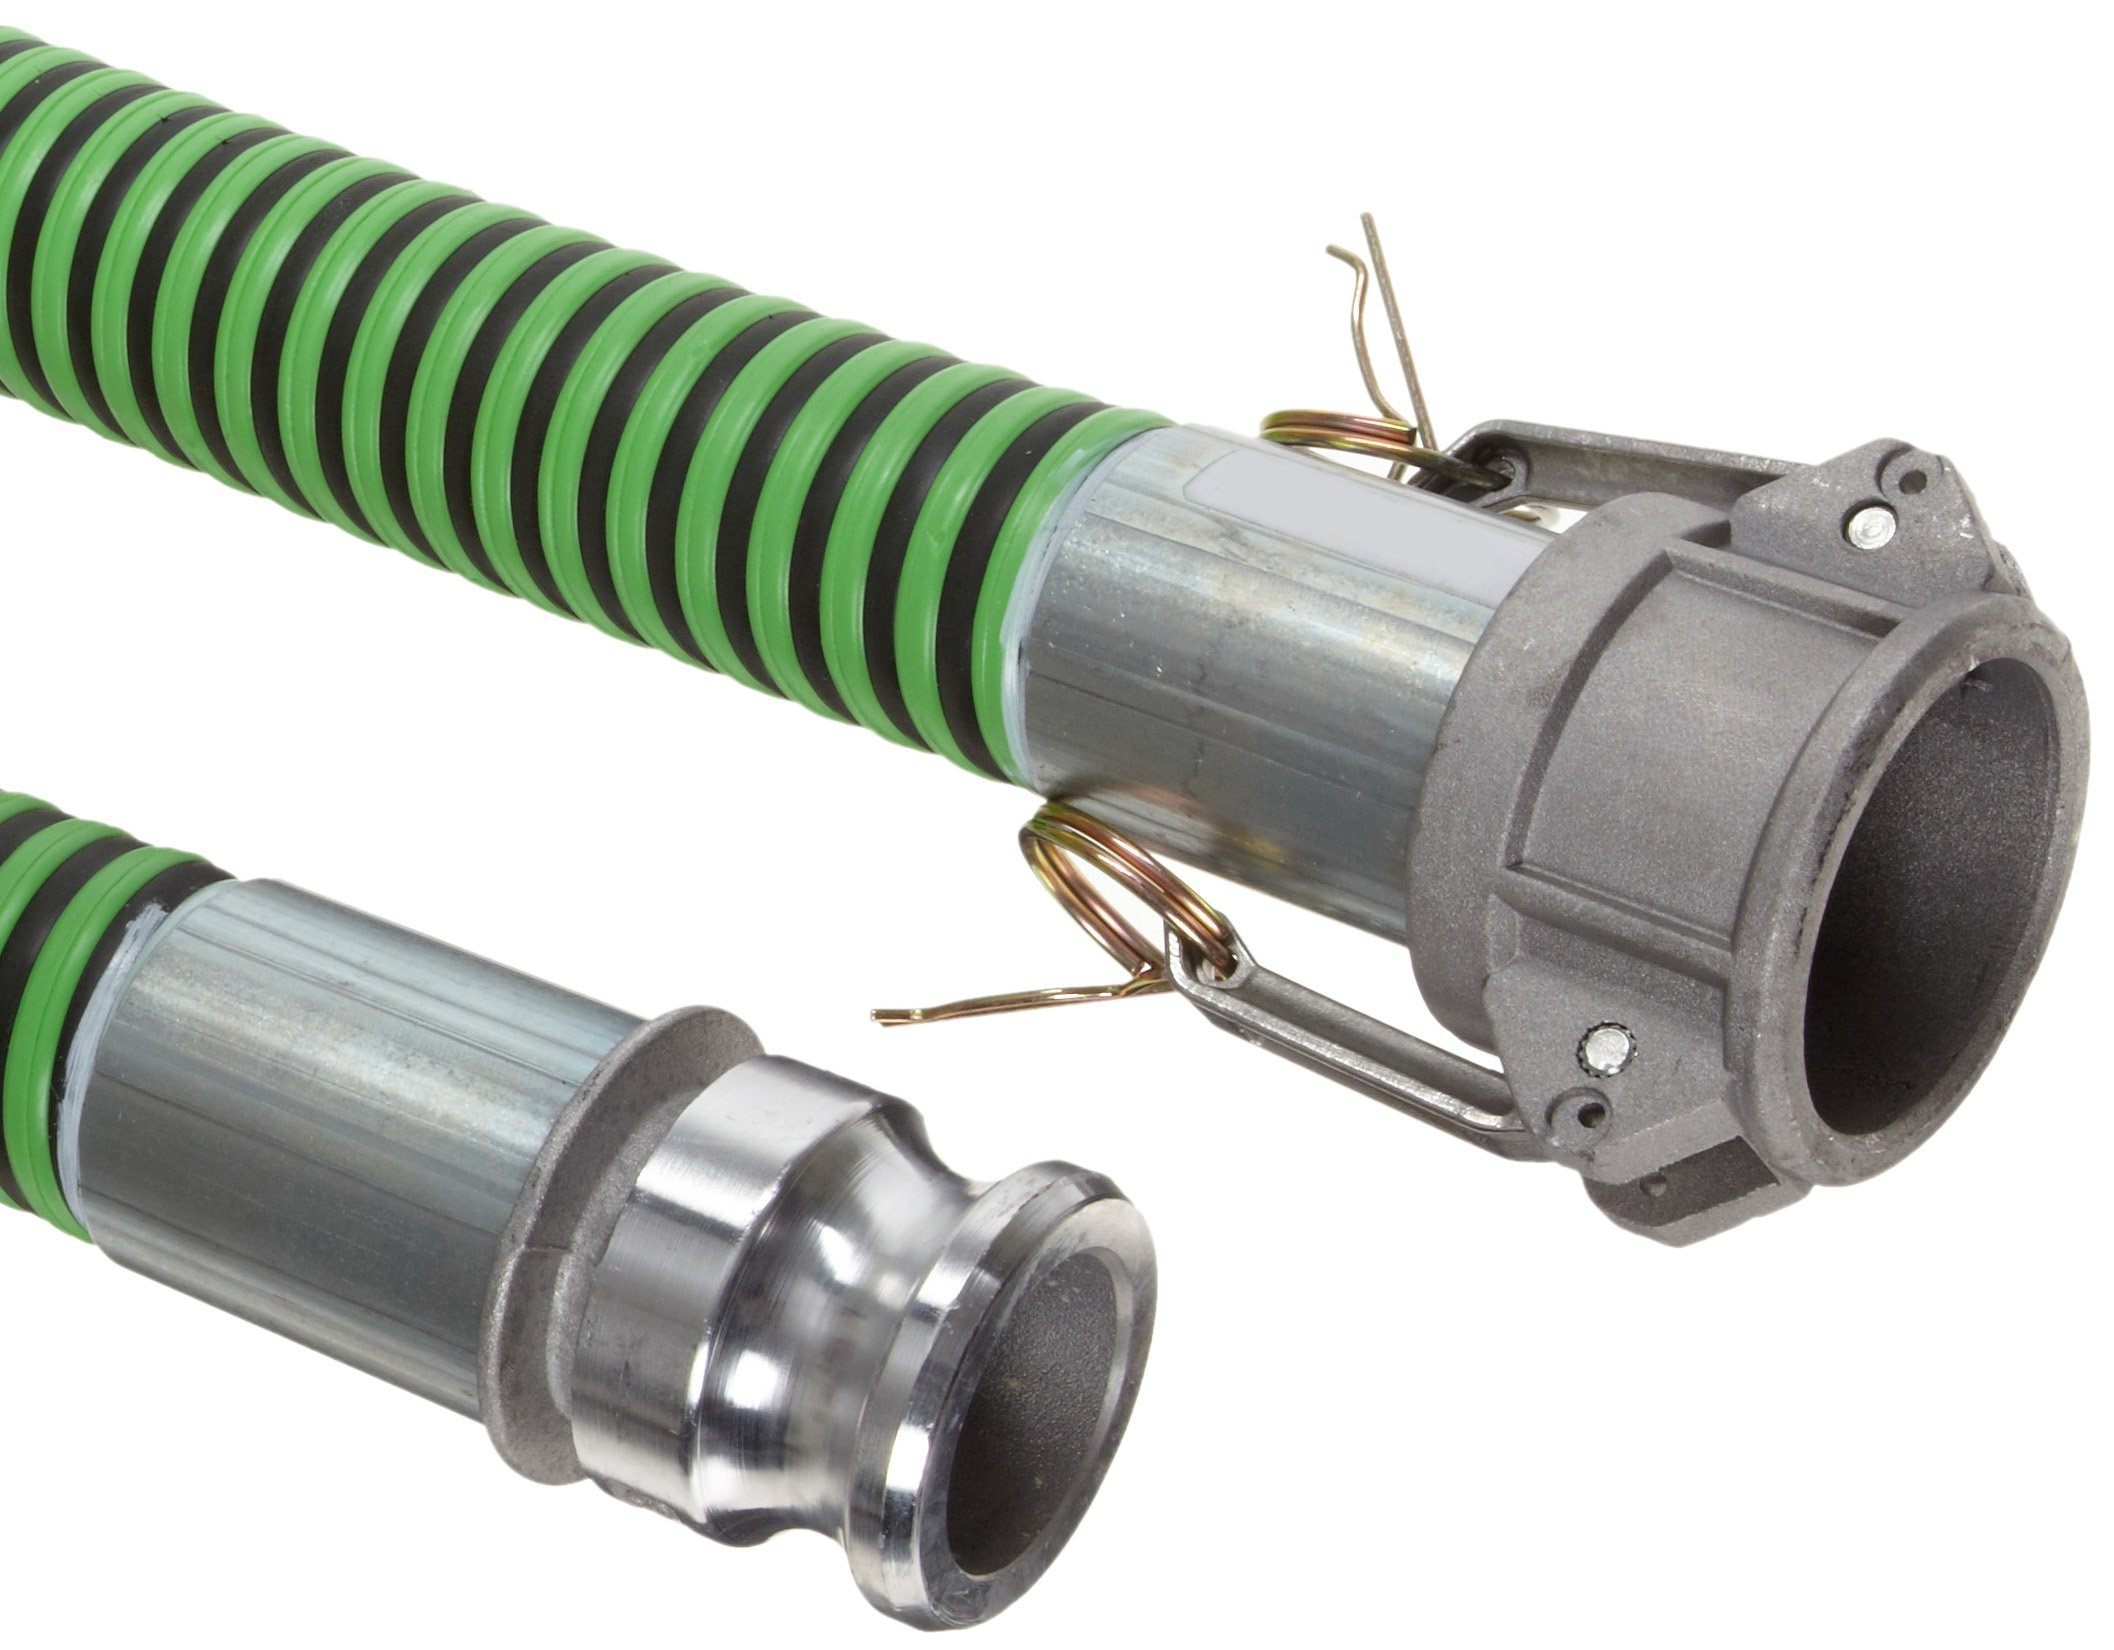 Goodyear EP Green Hornet XF Rubber Suction/Discharge Hose Assembly, 1-1/2'' Aluminum Cam And Groove Connection, 50 PSI Maximum Pressure, 25' Length, 1-1/2'' ID